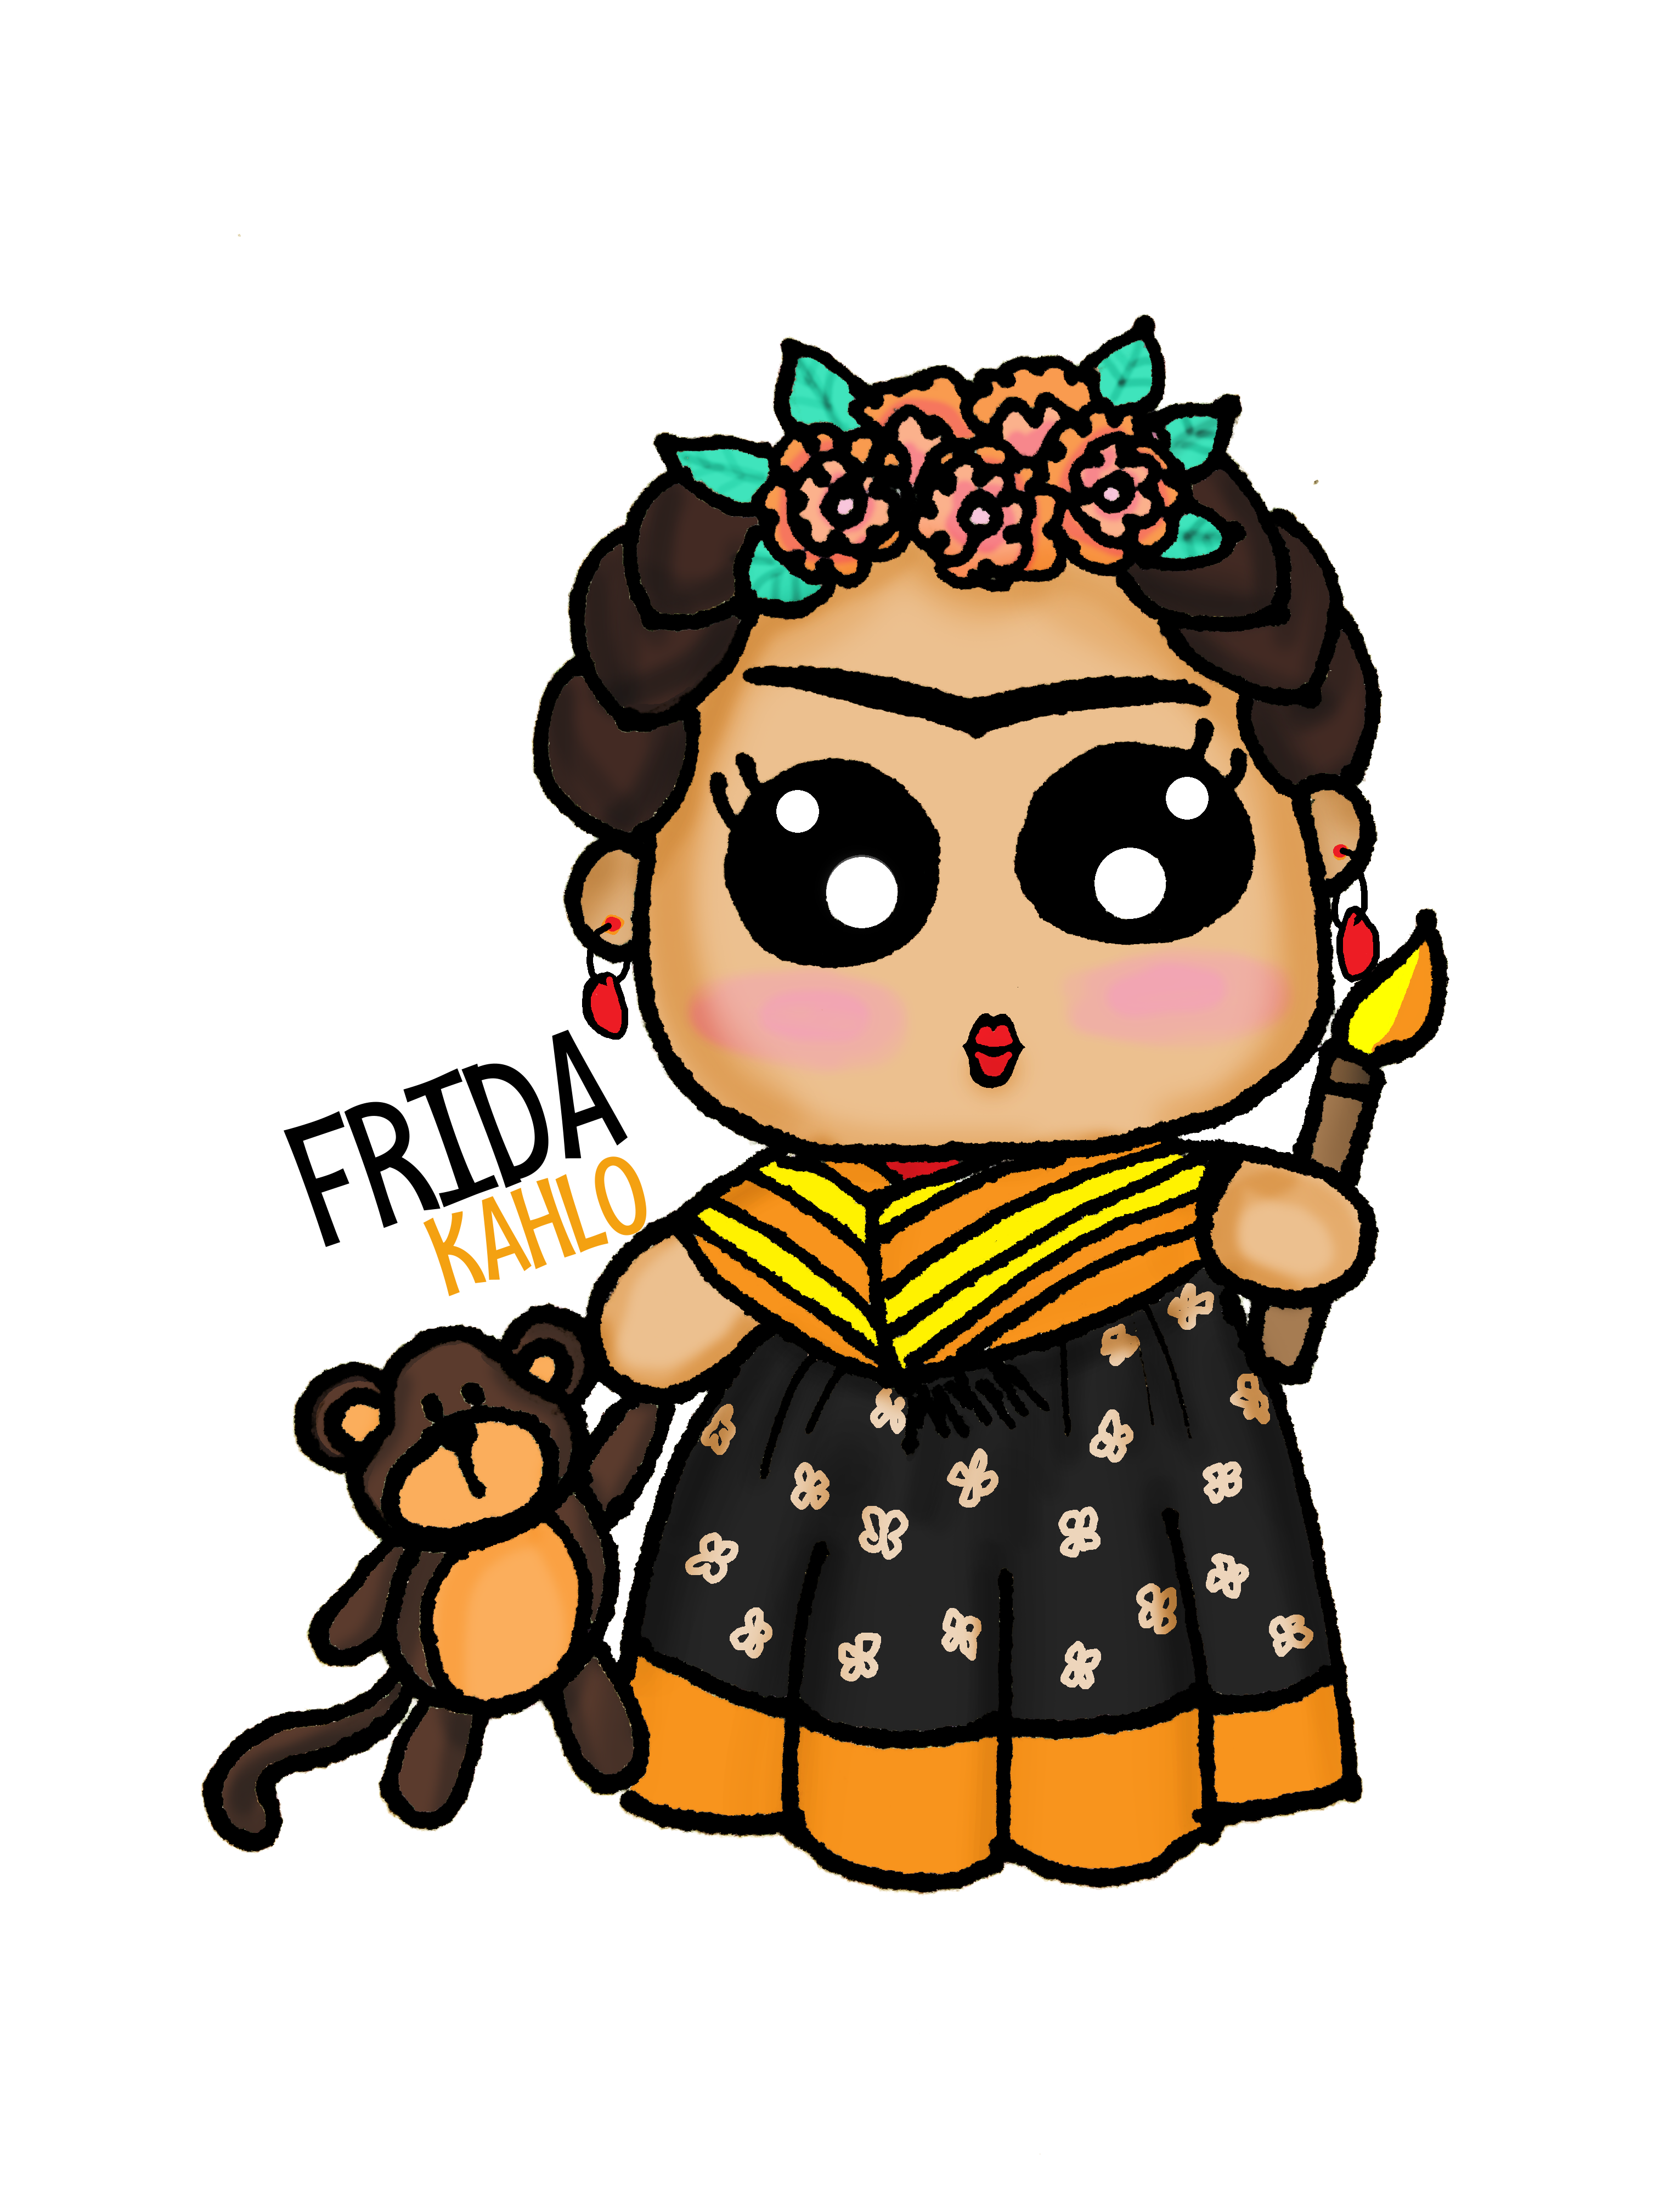 3024x4032 Frida Kahlo Kawaii Draw Frida Frida Kahlo, Kawaii